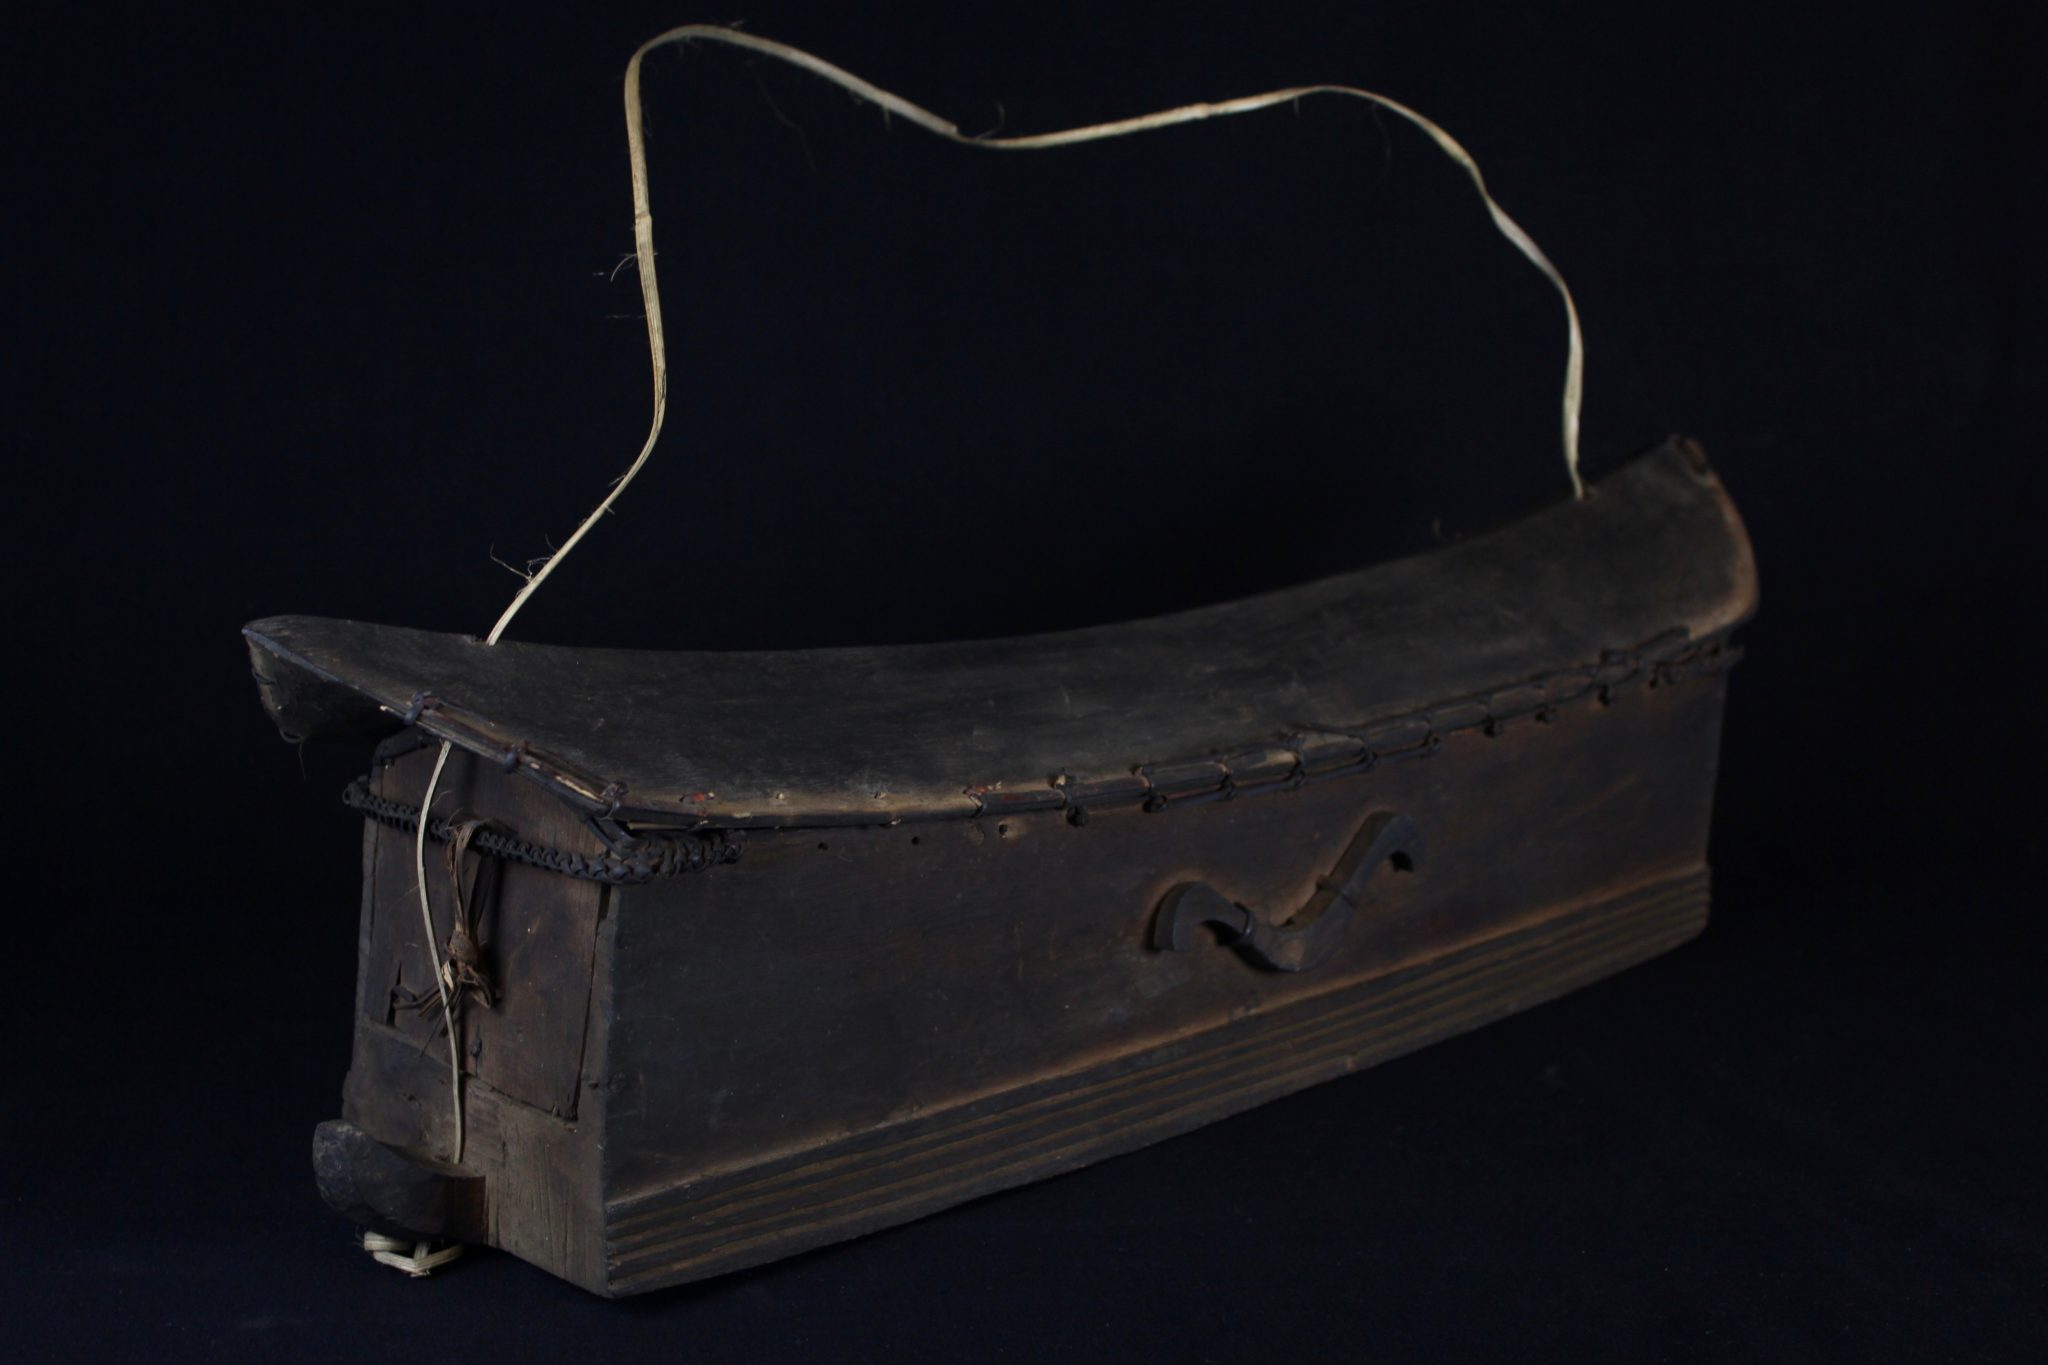 "'Salipa', Medicine Boat Box, Mentawai Islands, Sumatra, Indonesia, Mentawai tribe, Early 20th c, Wood with reed stitching and strap. Used by shaman to store implements to be used when called upon to convene with spirit world. 8"" x 26"" x 5 ¾"", $1100."